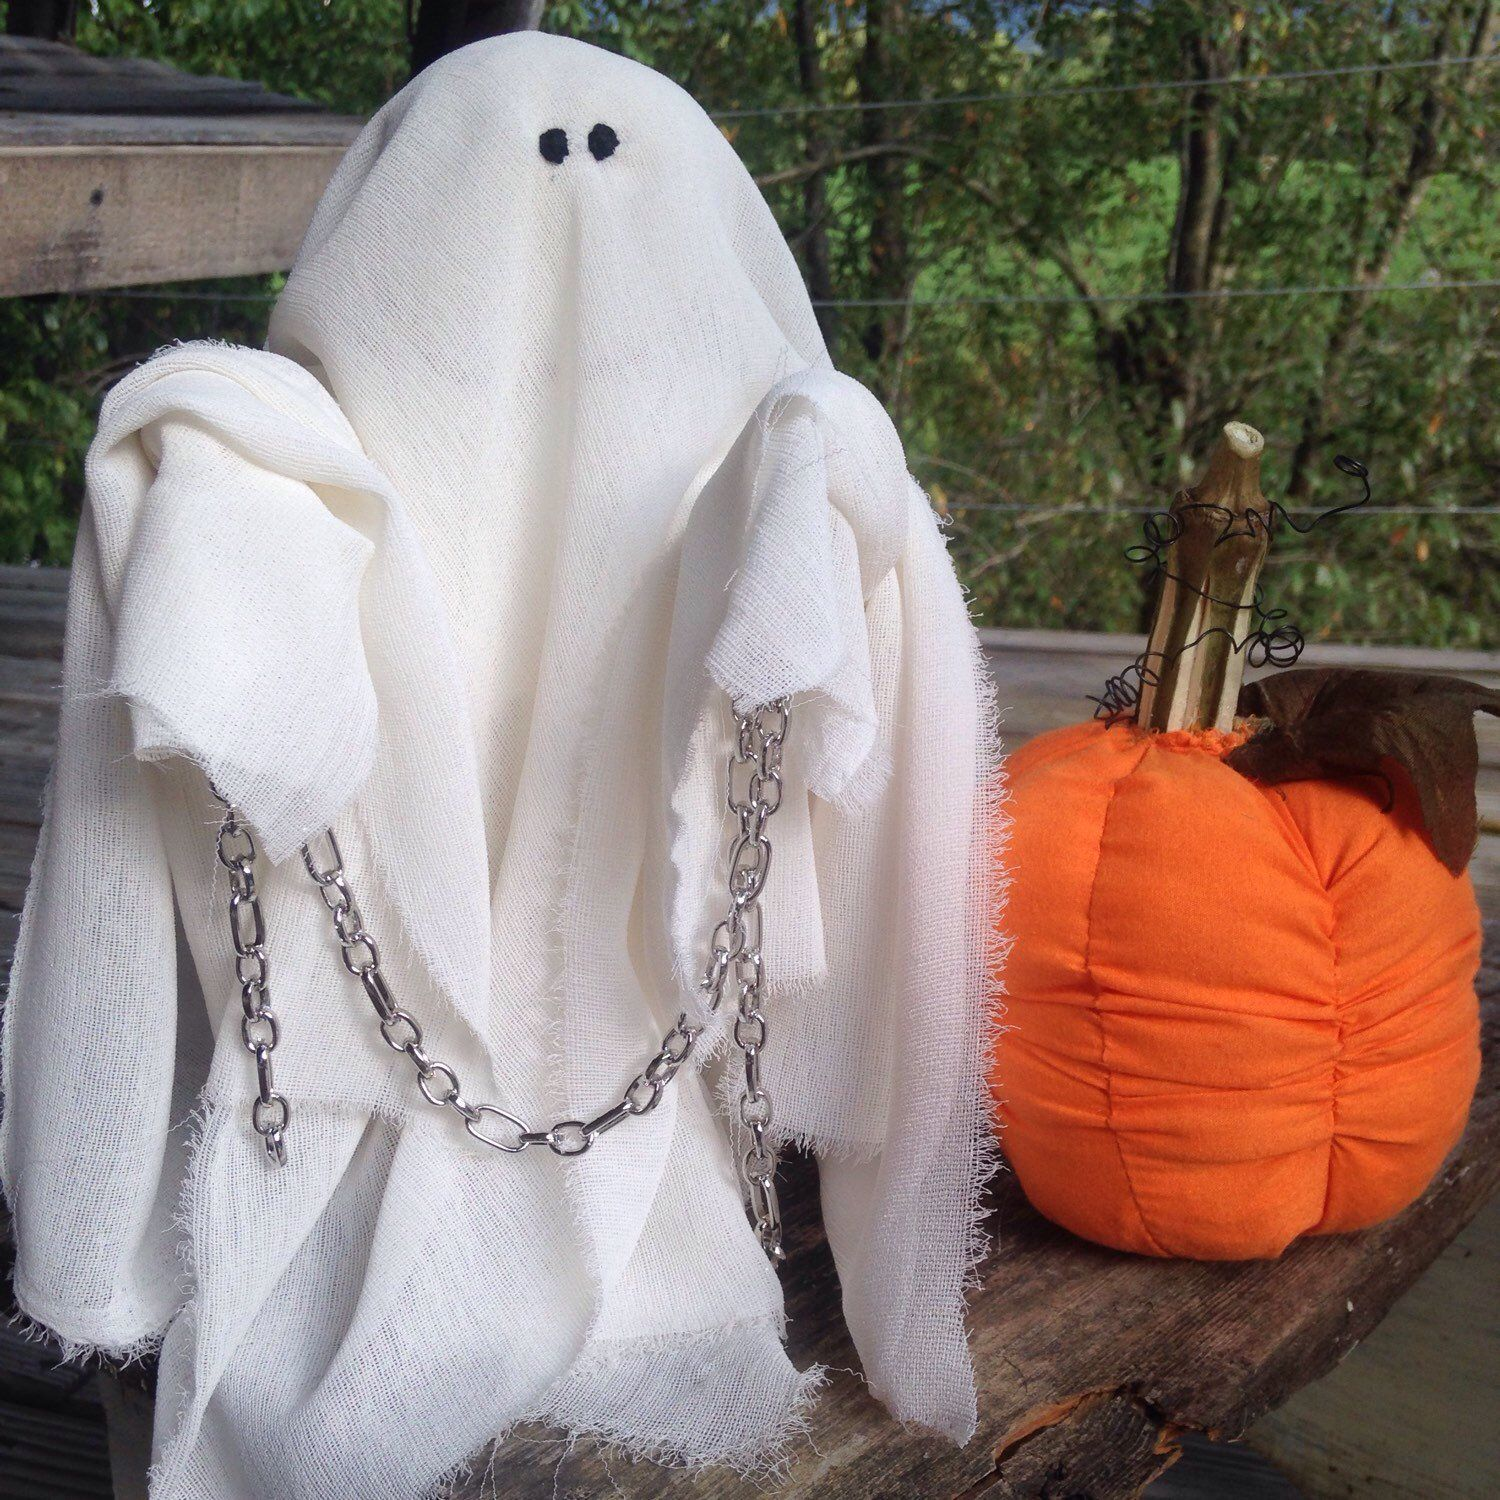 NanasThreadsOfLove shared a new photo on Halloween Pinterest - Ghost Halloween Decorations